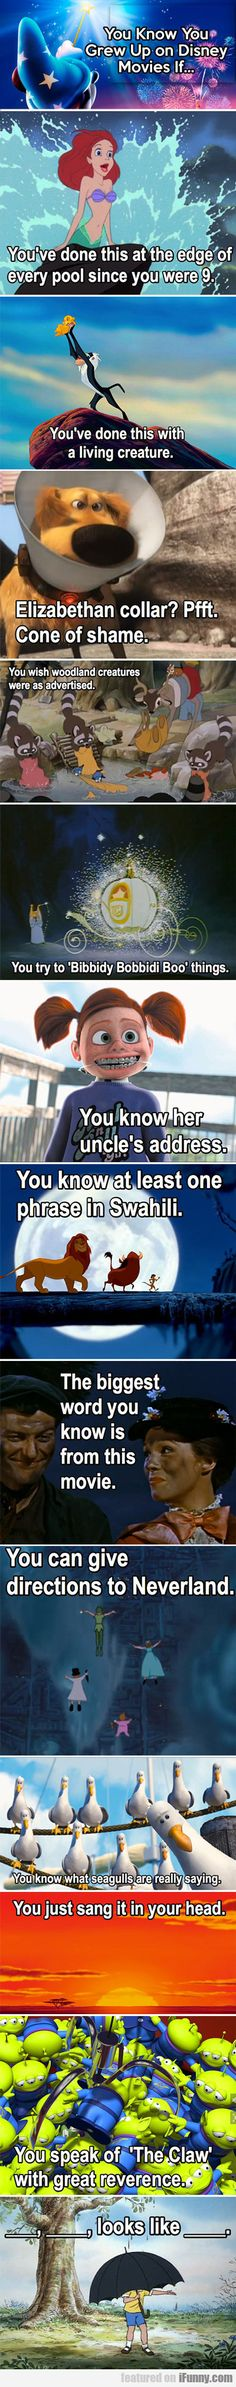 Funny pictures about You know you grew up on Disney movies if. Oh, and cool pics about You know you grew up on Disney movies if. Also, You know you grew up on Disney movies if. Walt Disney, Disney Pixar, Disney Girls, Disney And Dreamworks, Disney Love, Disney Memes, Disney Magic, Disney Stuff, Disney Quotes